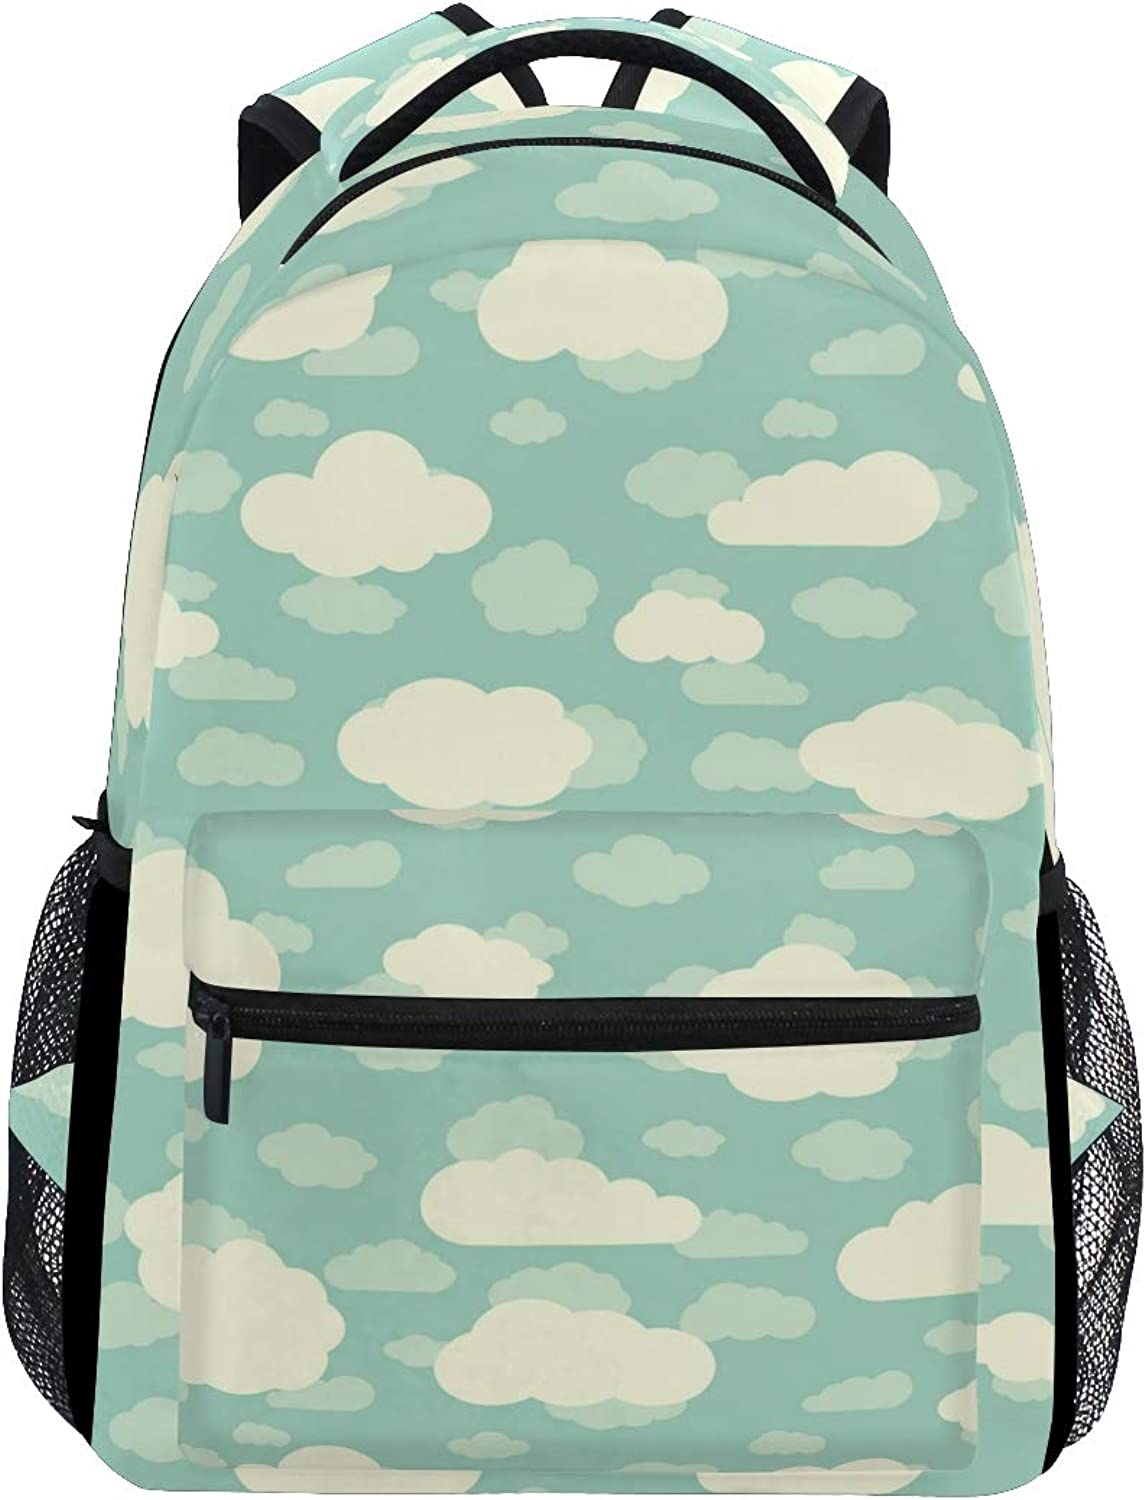 Dark Green Clouds Backdrop Large Backpack Travel Outdoor Sports Laptop Backpack for Women & Men College School Water Resistant